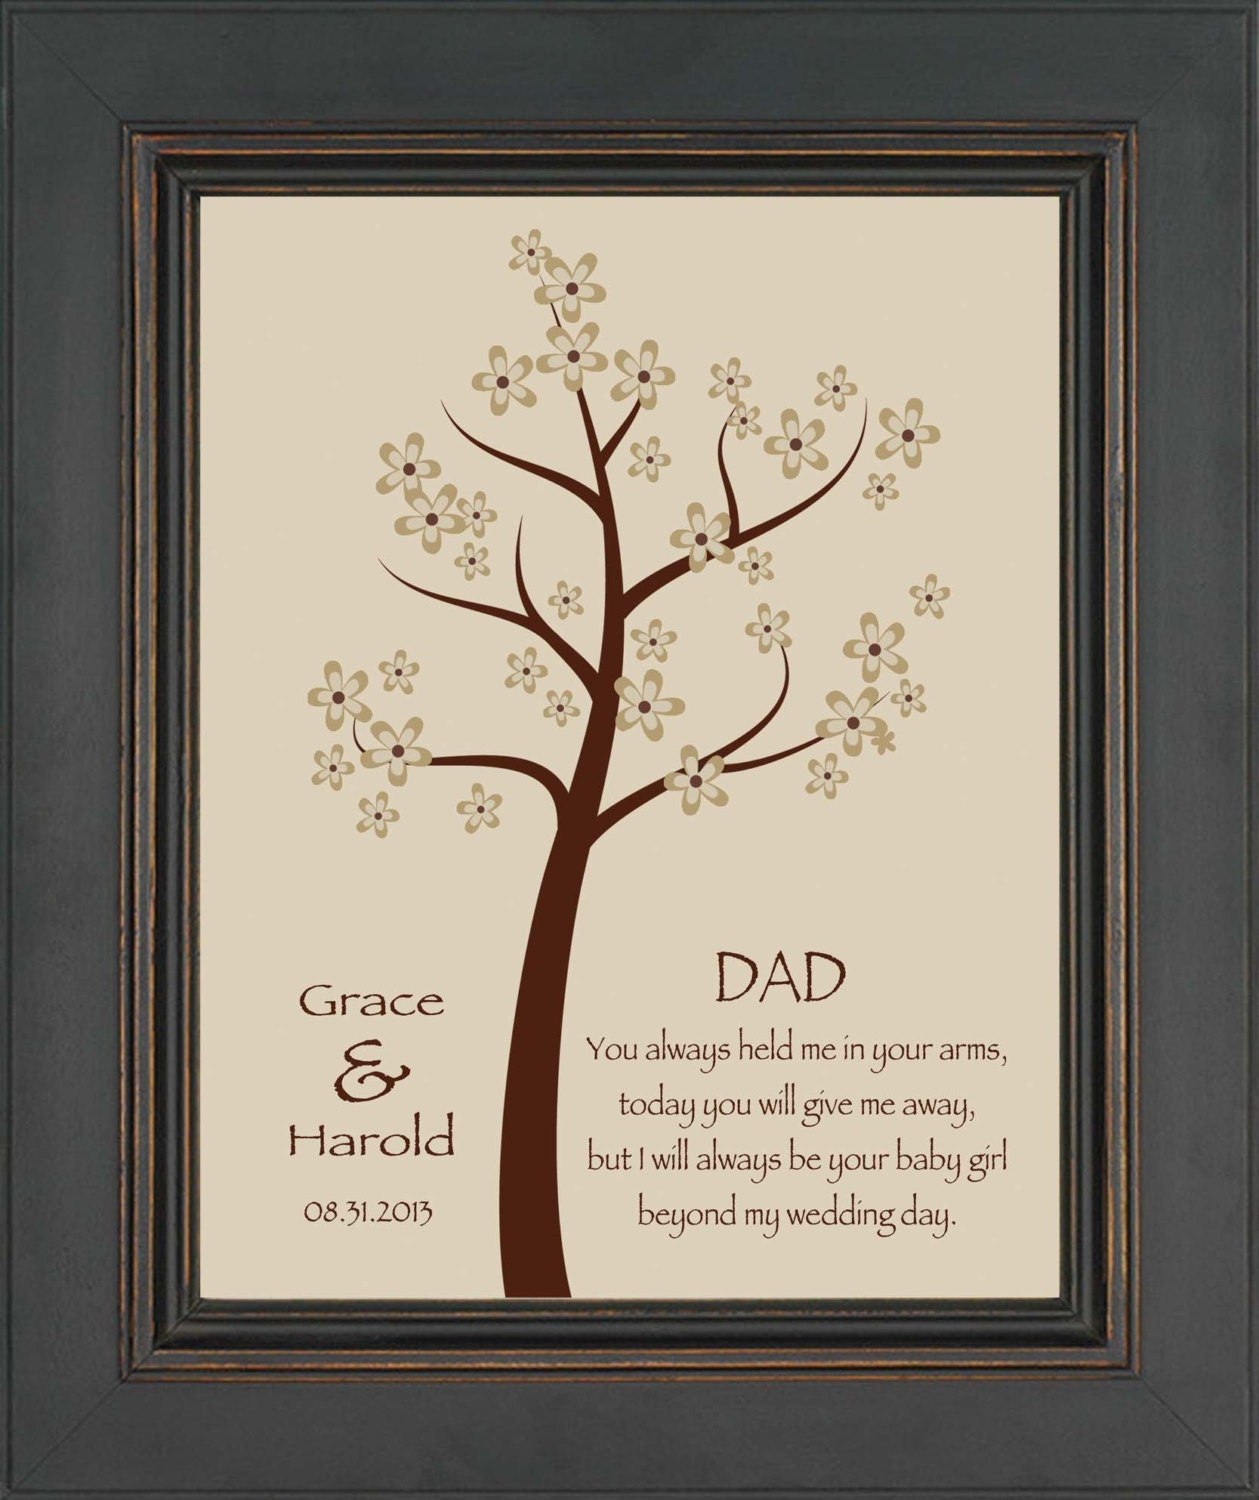 Wedding Gift Ideas For Dad : Wedding Gift for DAD from Bride Thank you gift for DAD on